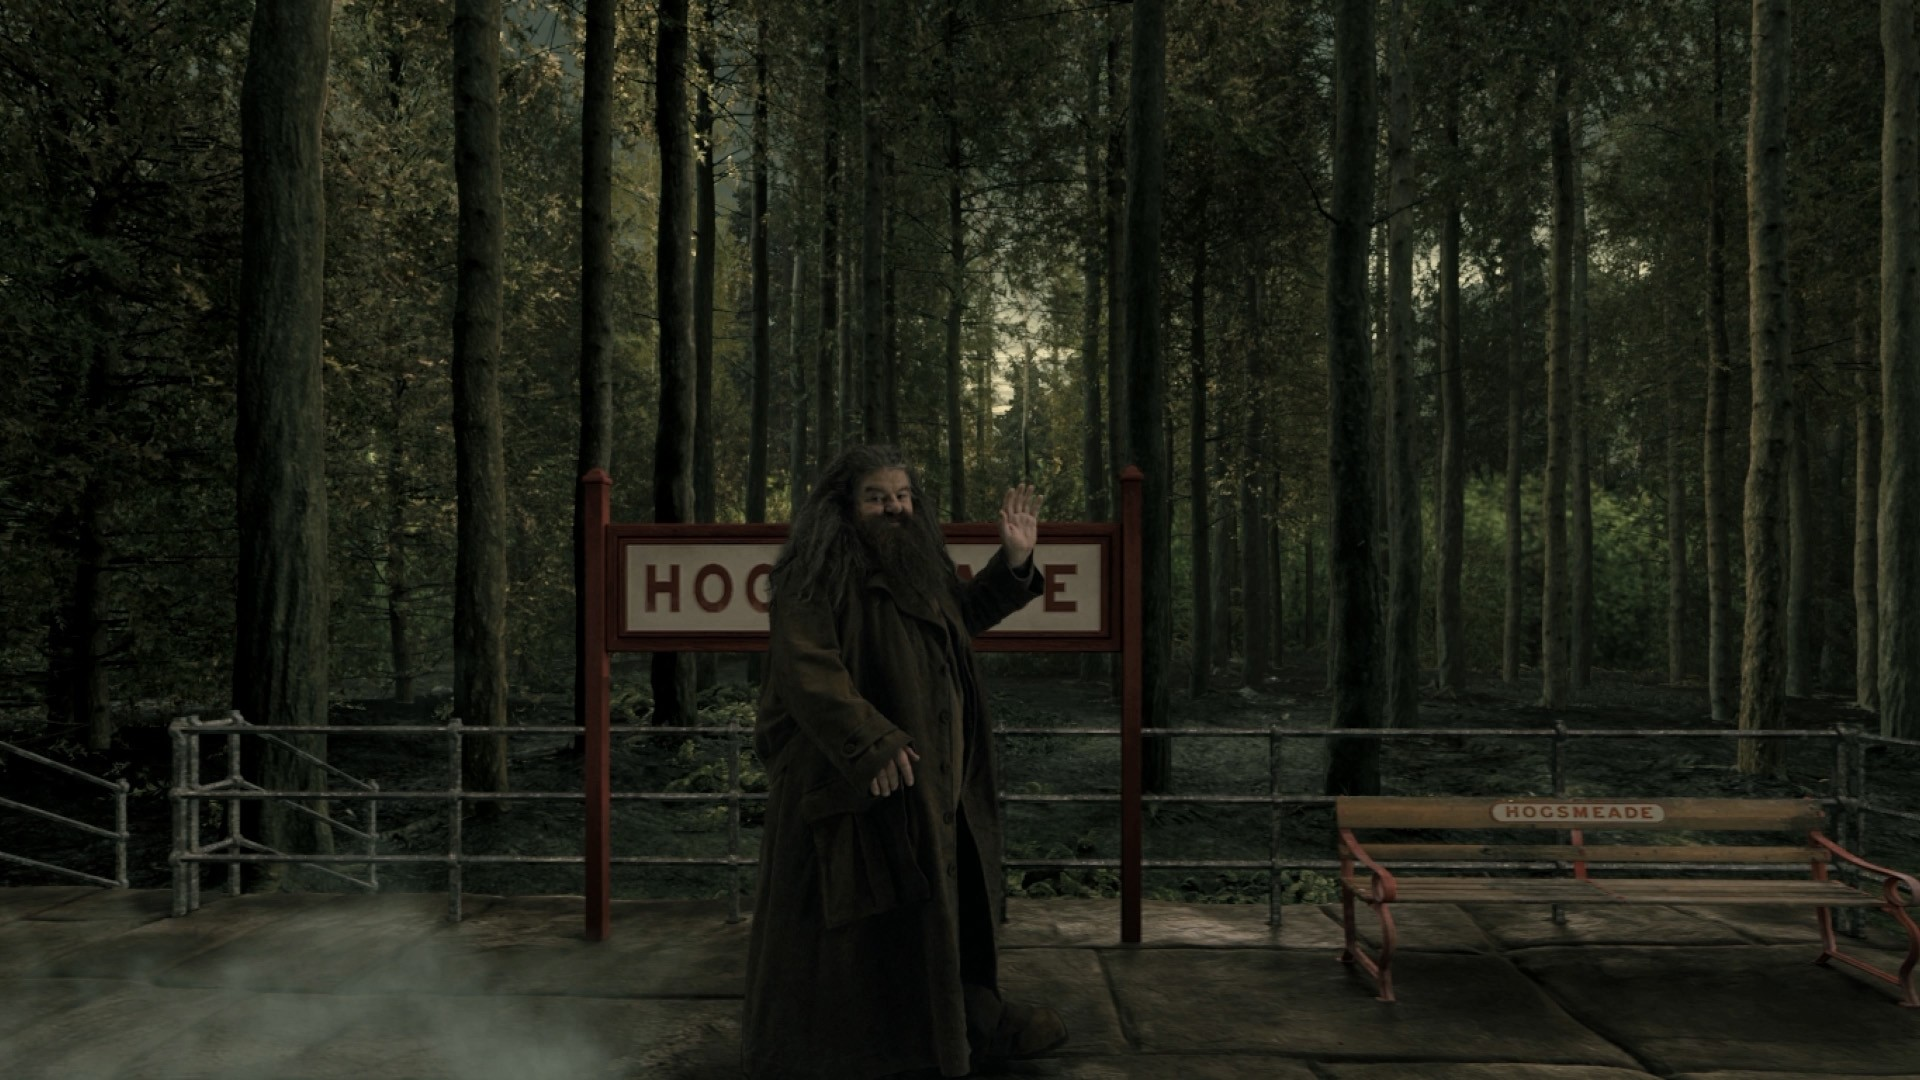 Res: 1920x1080, Hogwarts-Express-Animation-Hagrid-at-Hogsmeade-Station.jpg